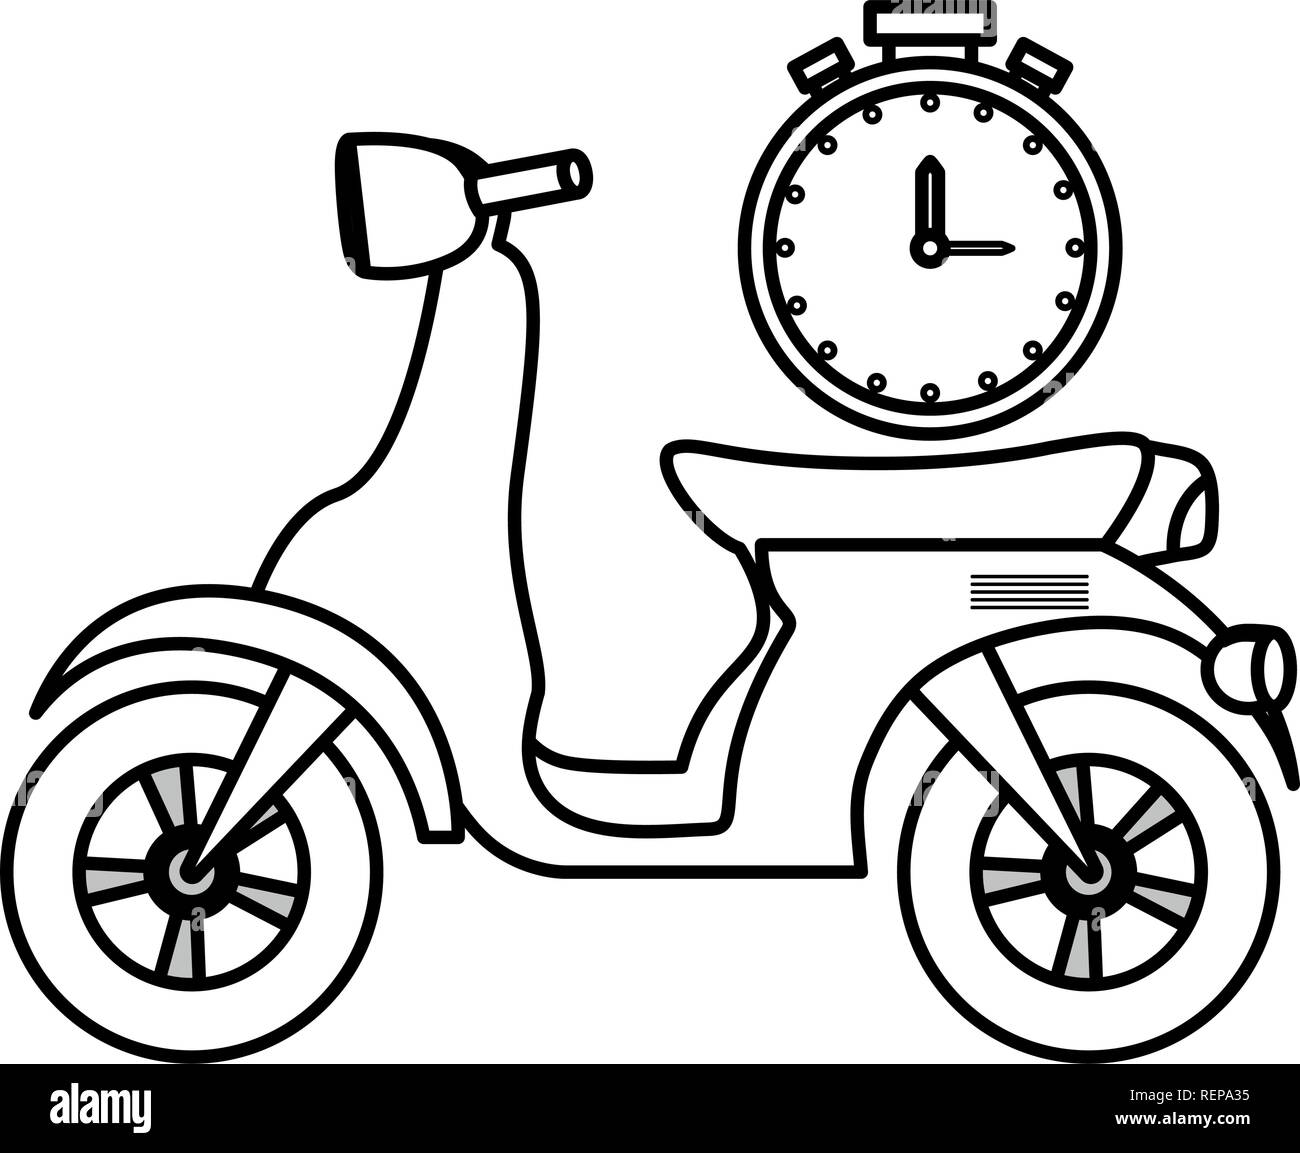 Motorcycle and chronometer over white background, vector illustration - Stock Vector